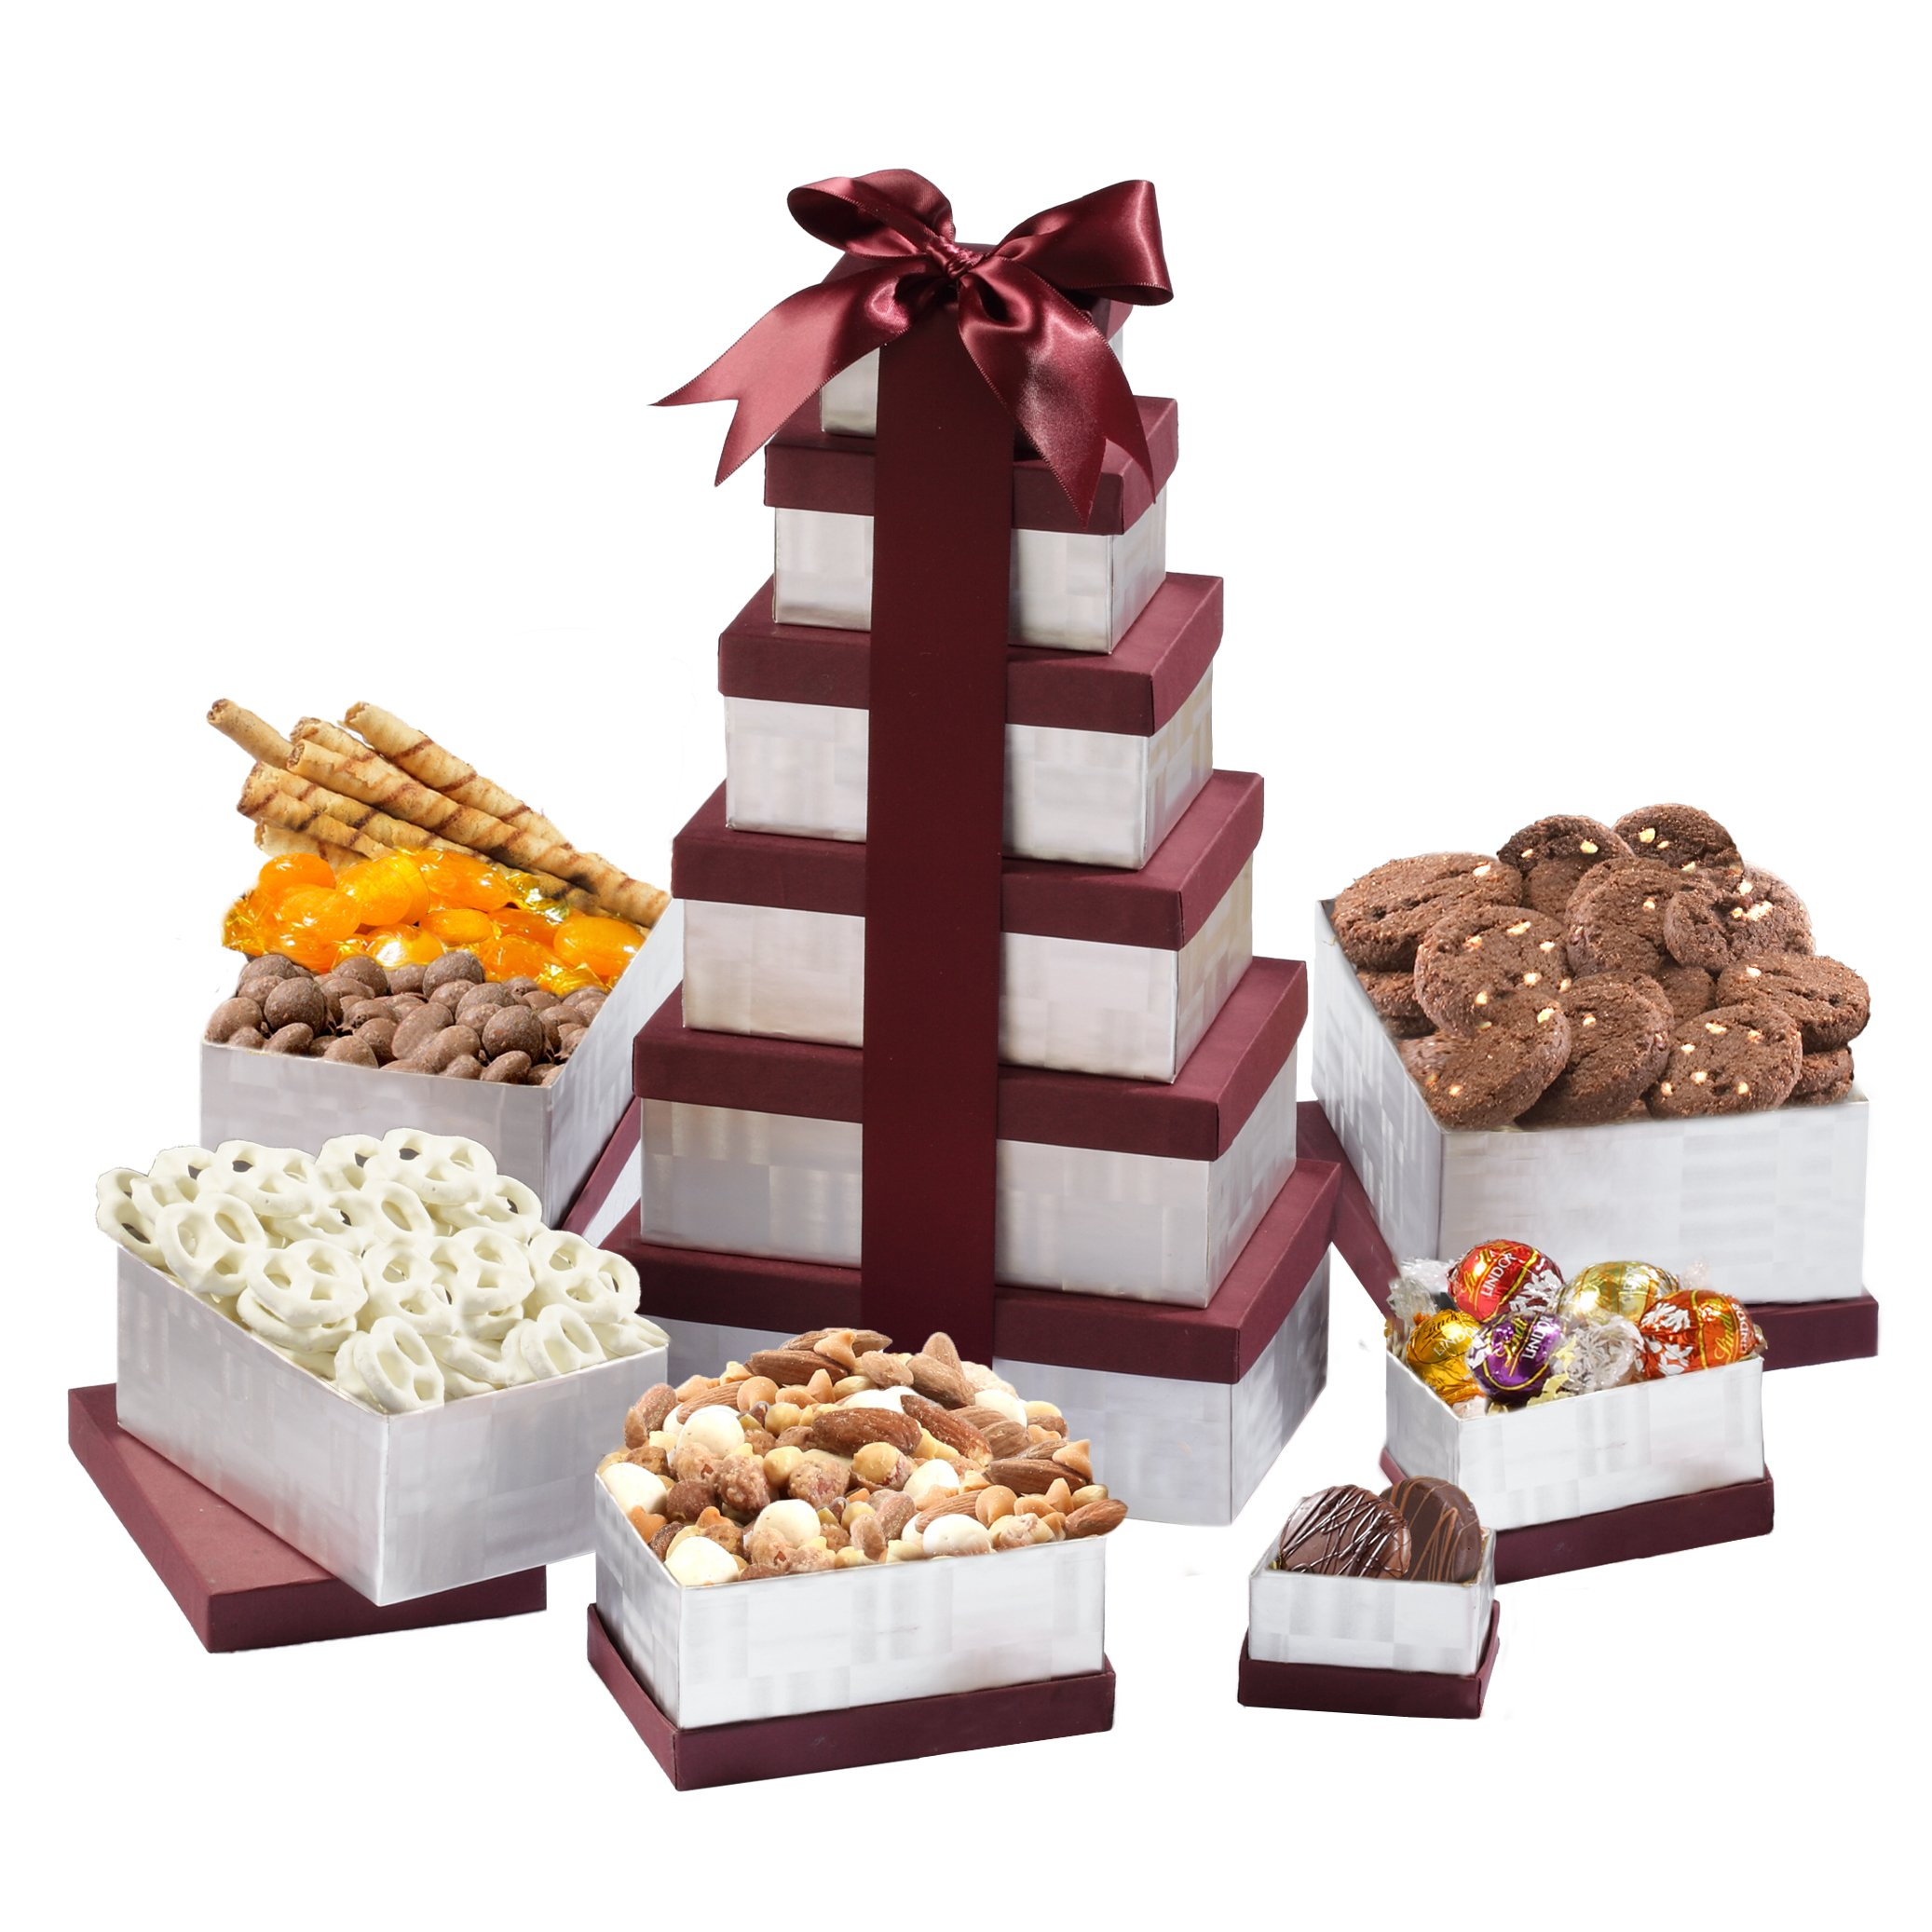 Broadway Basketeers Birthday Celebration Gift Tower With A Gourmet Assortment Of Sweets Nuts Pastries